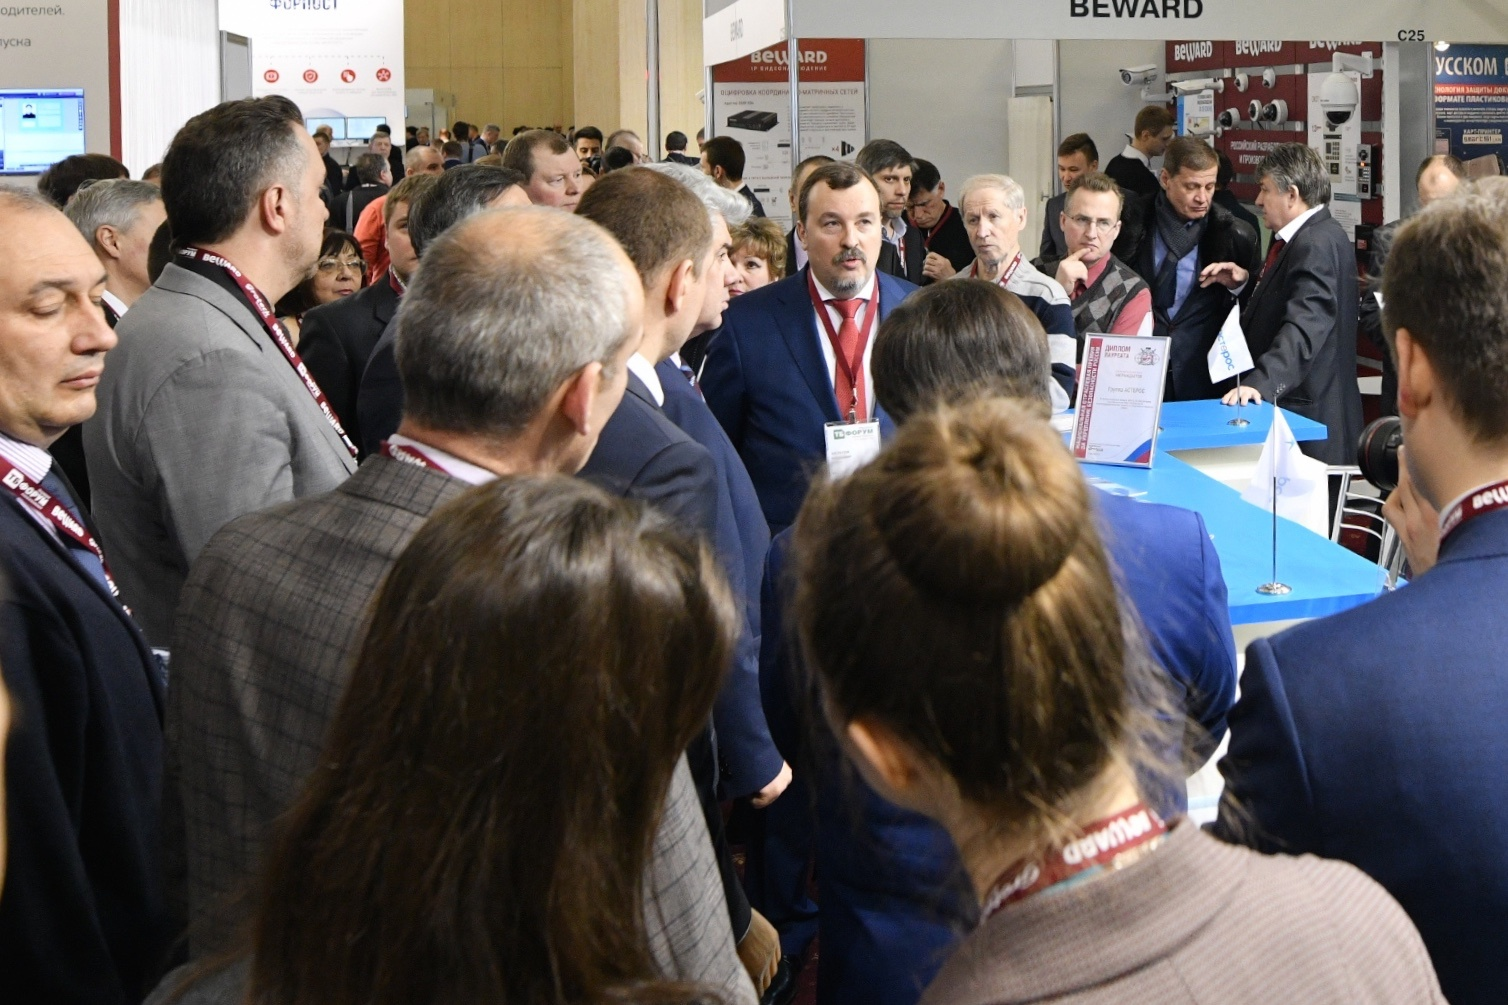 TB Forum 2018: new quality of exposition, powerful conference program, C-level professional audience and pre-arranged meetings with buyers